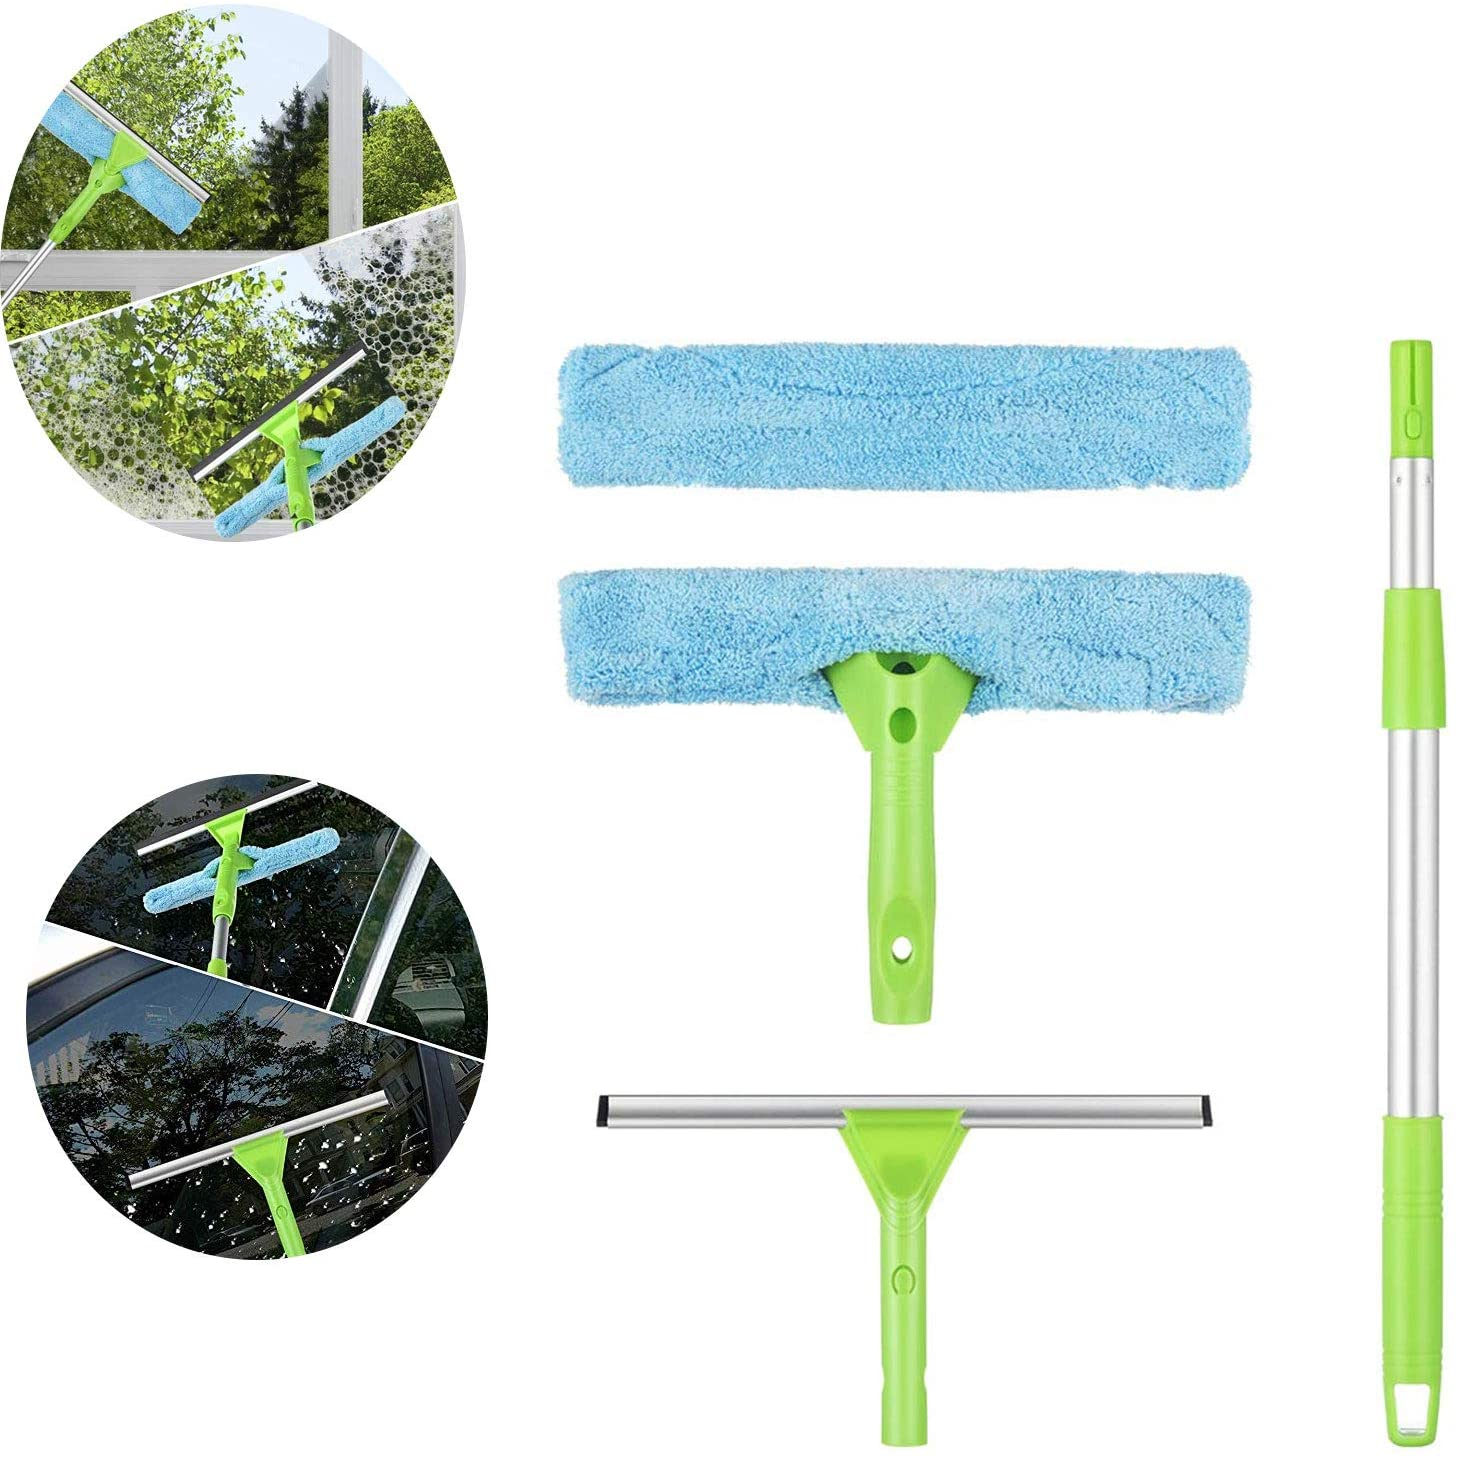 AWZSDF Window Squeegee Cleaner,3 in 1 Window Squeegee Natural Rubber Scraper Head, Microfiber Fabric, Viscous Strip Design, Extended Telescopic Rod for Window Glass,Car Windshield